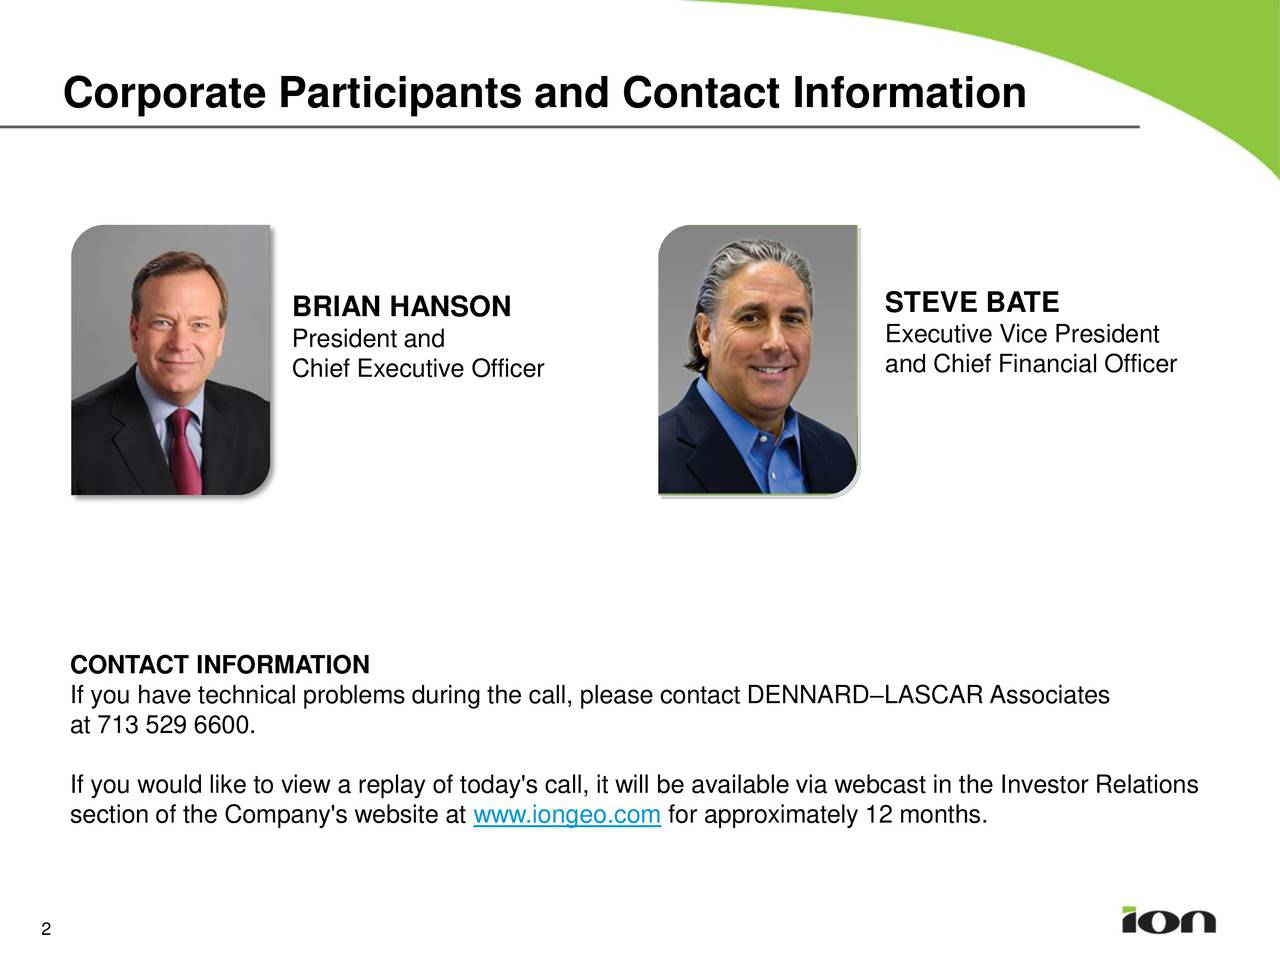 BRIAN HANSON STEVE BATE President and Executive Vice President and Chief Financial Officer Chief Executive Officer CONTACT INFORMATION If you have technical problems during the call, please contact DENNARDLASCAR Associates at 713 529 6600. If you would like to view a replay of today's call, it will be available via webcast in the Investor Relations section of the Company's website at www.iongeo.com for approximately 12 months. 2